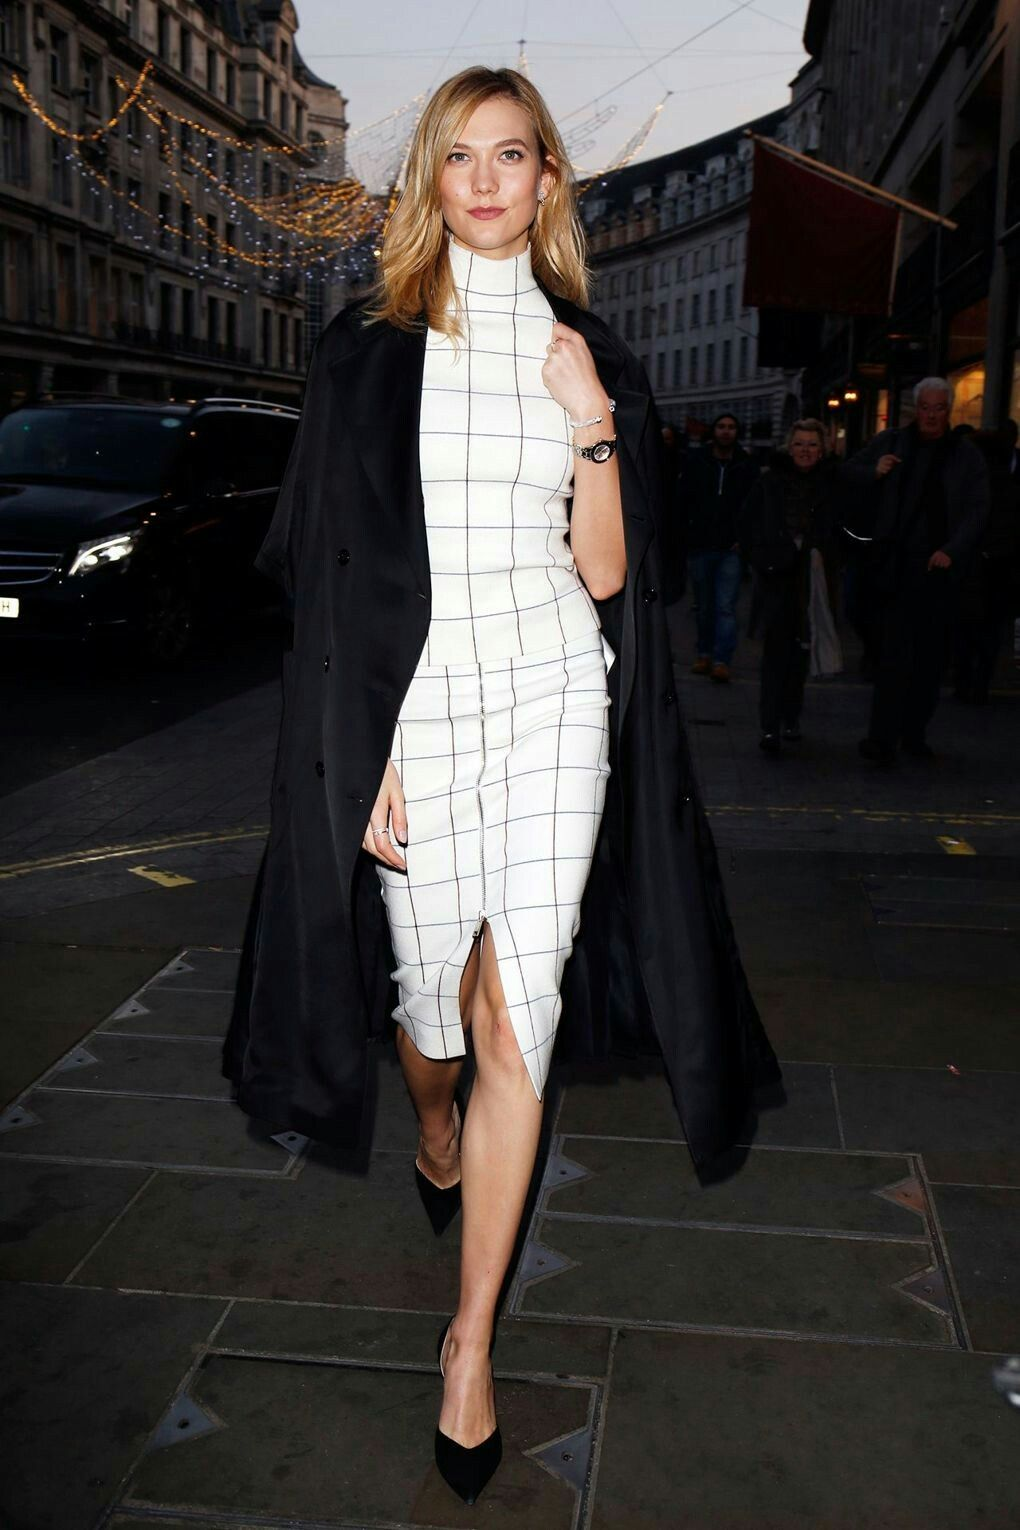 Swarovski Store Regent Street, London - December 5 2016 Karlie Kloss.